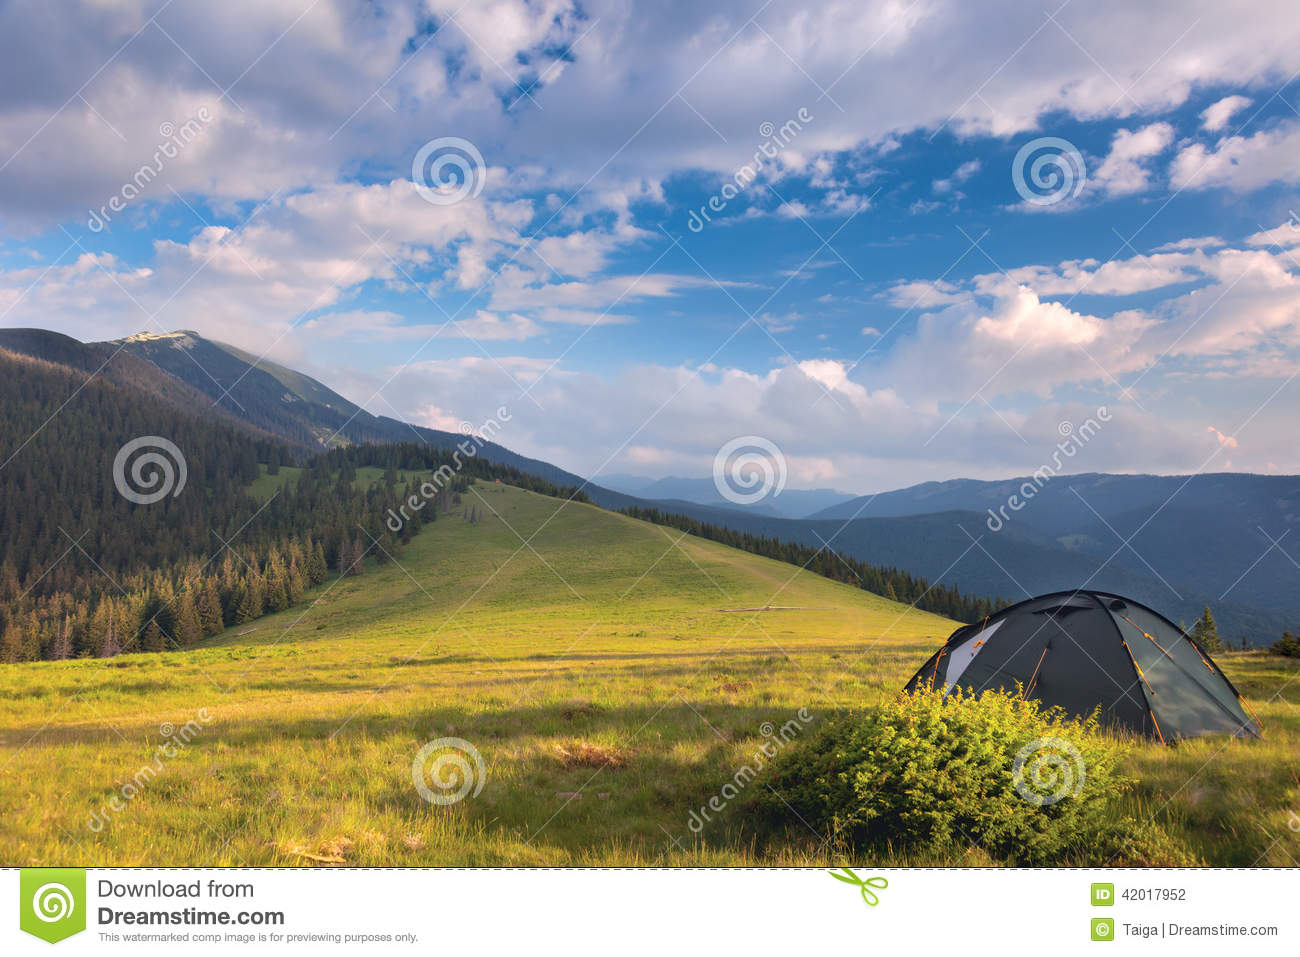 Camping tent in the mountains. Summer, blue sky, clouds and high